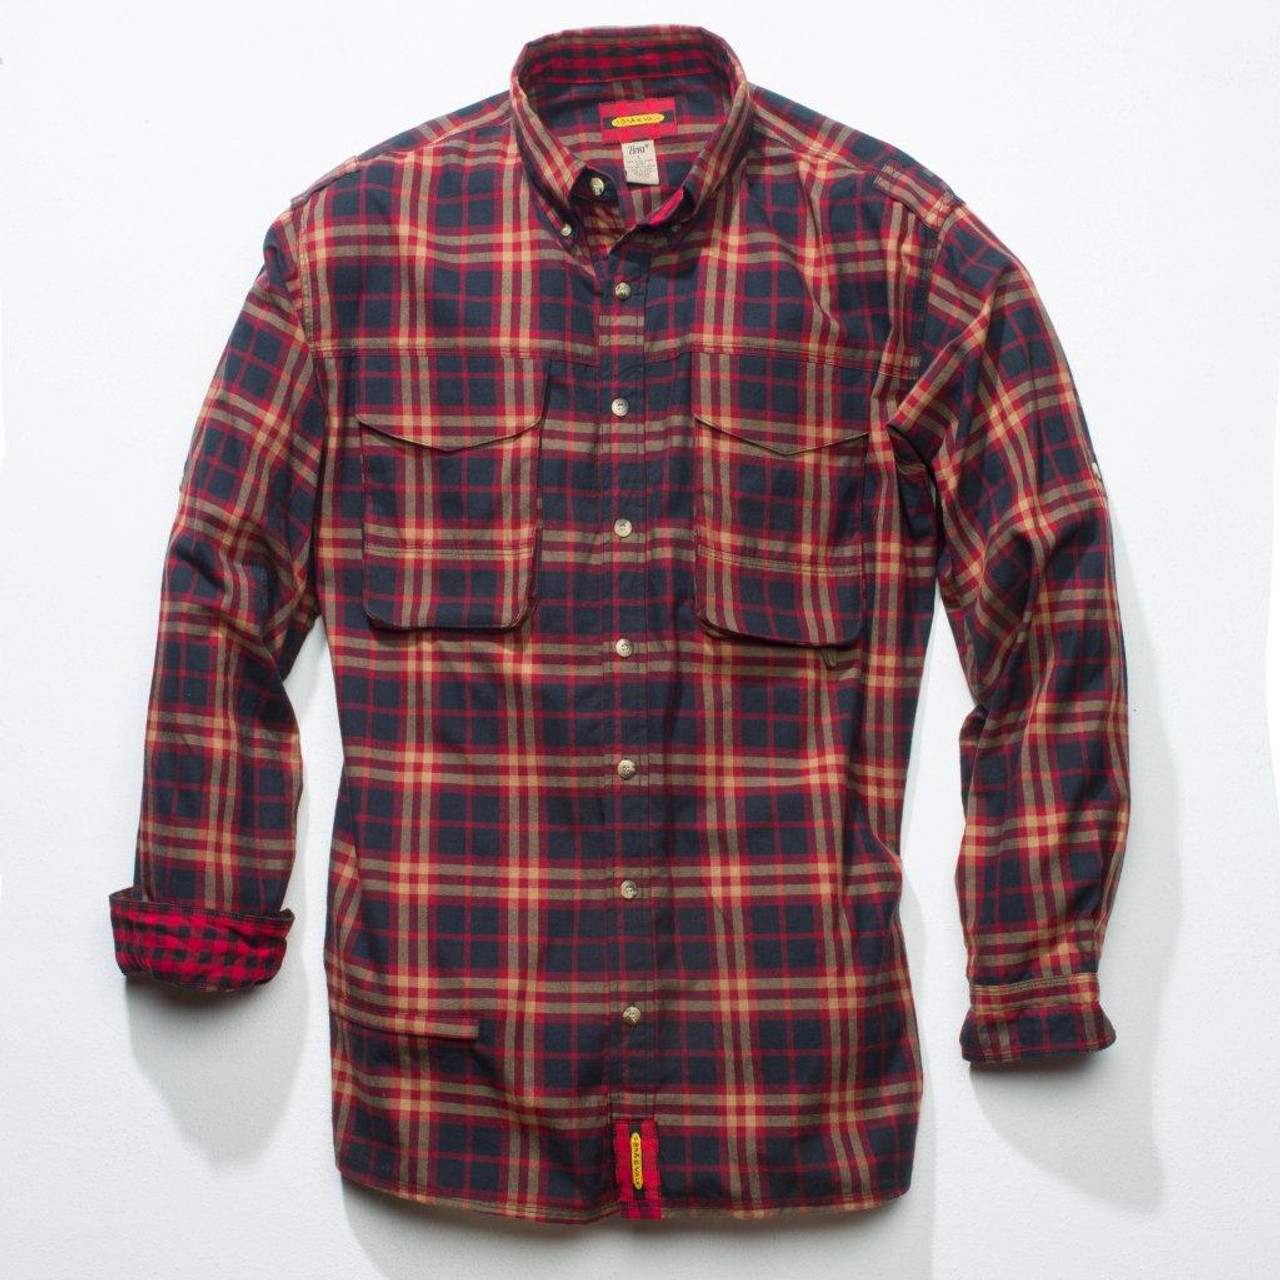 Exventurer - Black & Tan Crimson Estate Plaid - 25% OFF